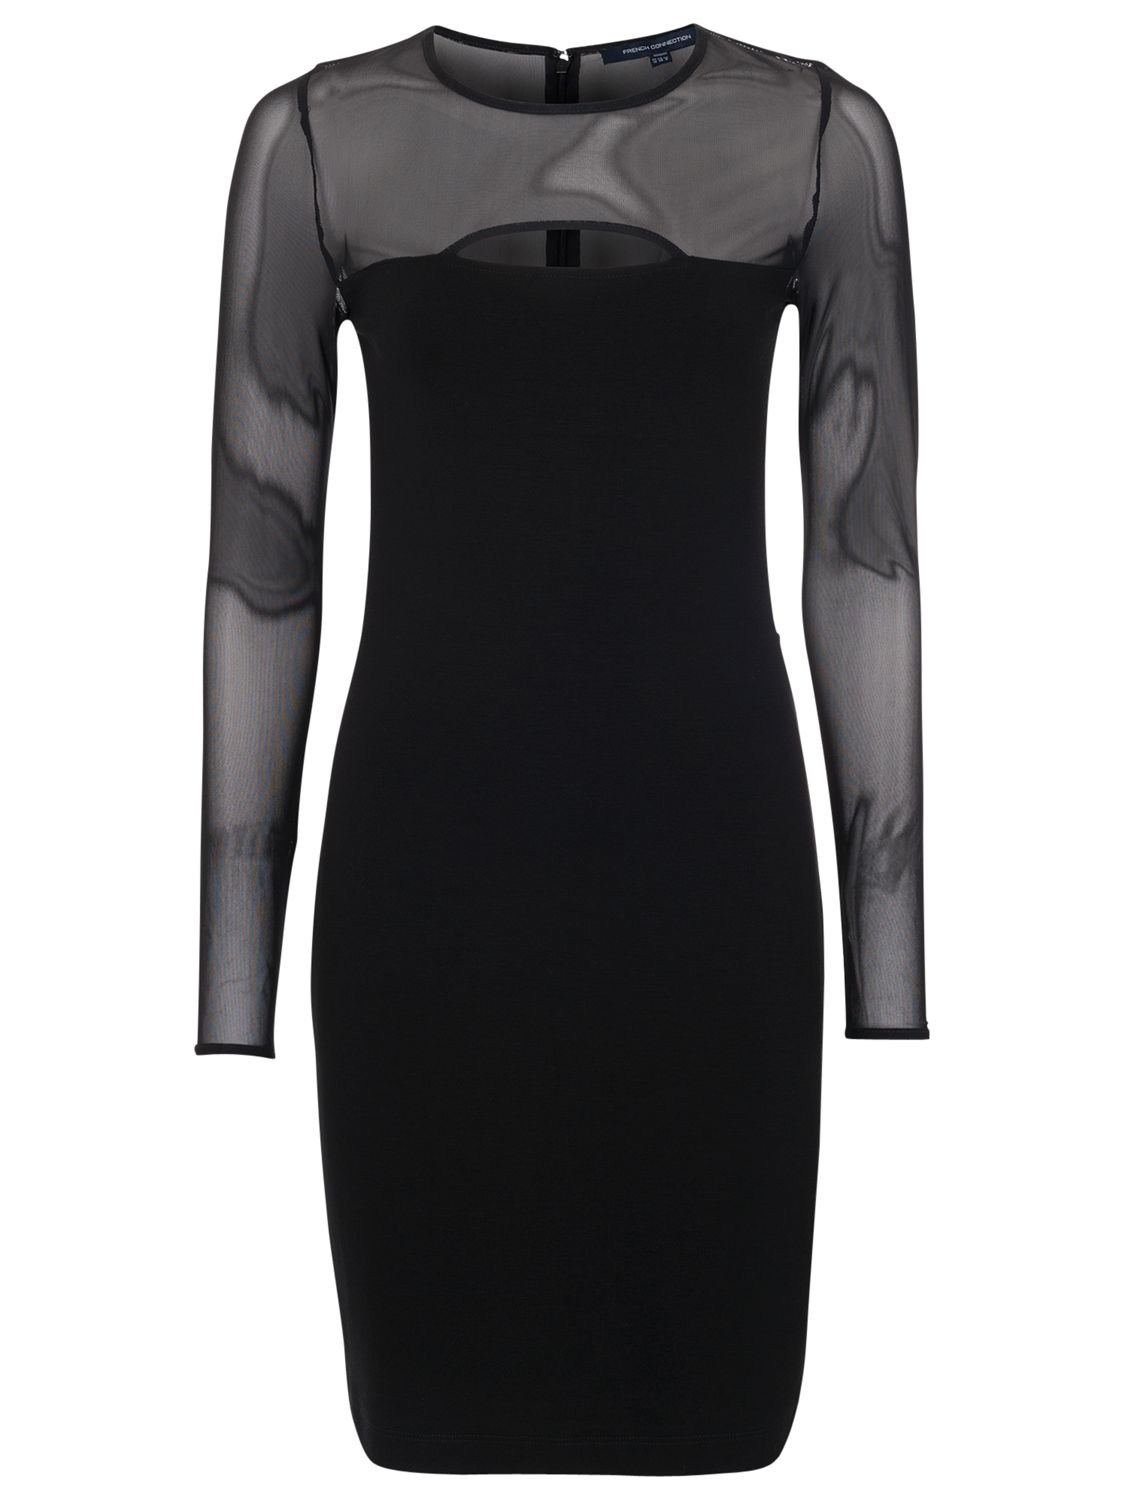 french connection valentine viscose round neck dress black, french, connection, valentine, viscose, round, neck, dress, black, french connection, 10|8|6, clearance, womenswear offers, womens dresses offers, new years party offers, women, inactive womenswear, new reductions, womens dresses, special offers, edition magazine, little black dress, 1579347